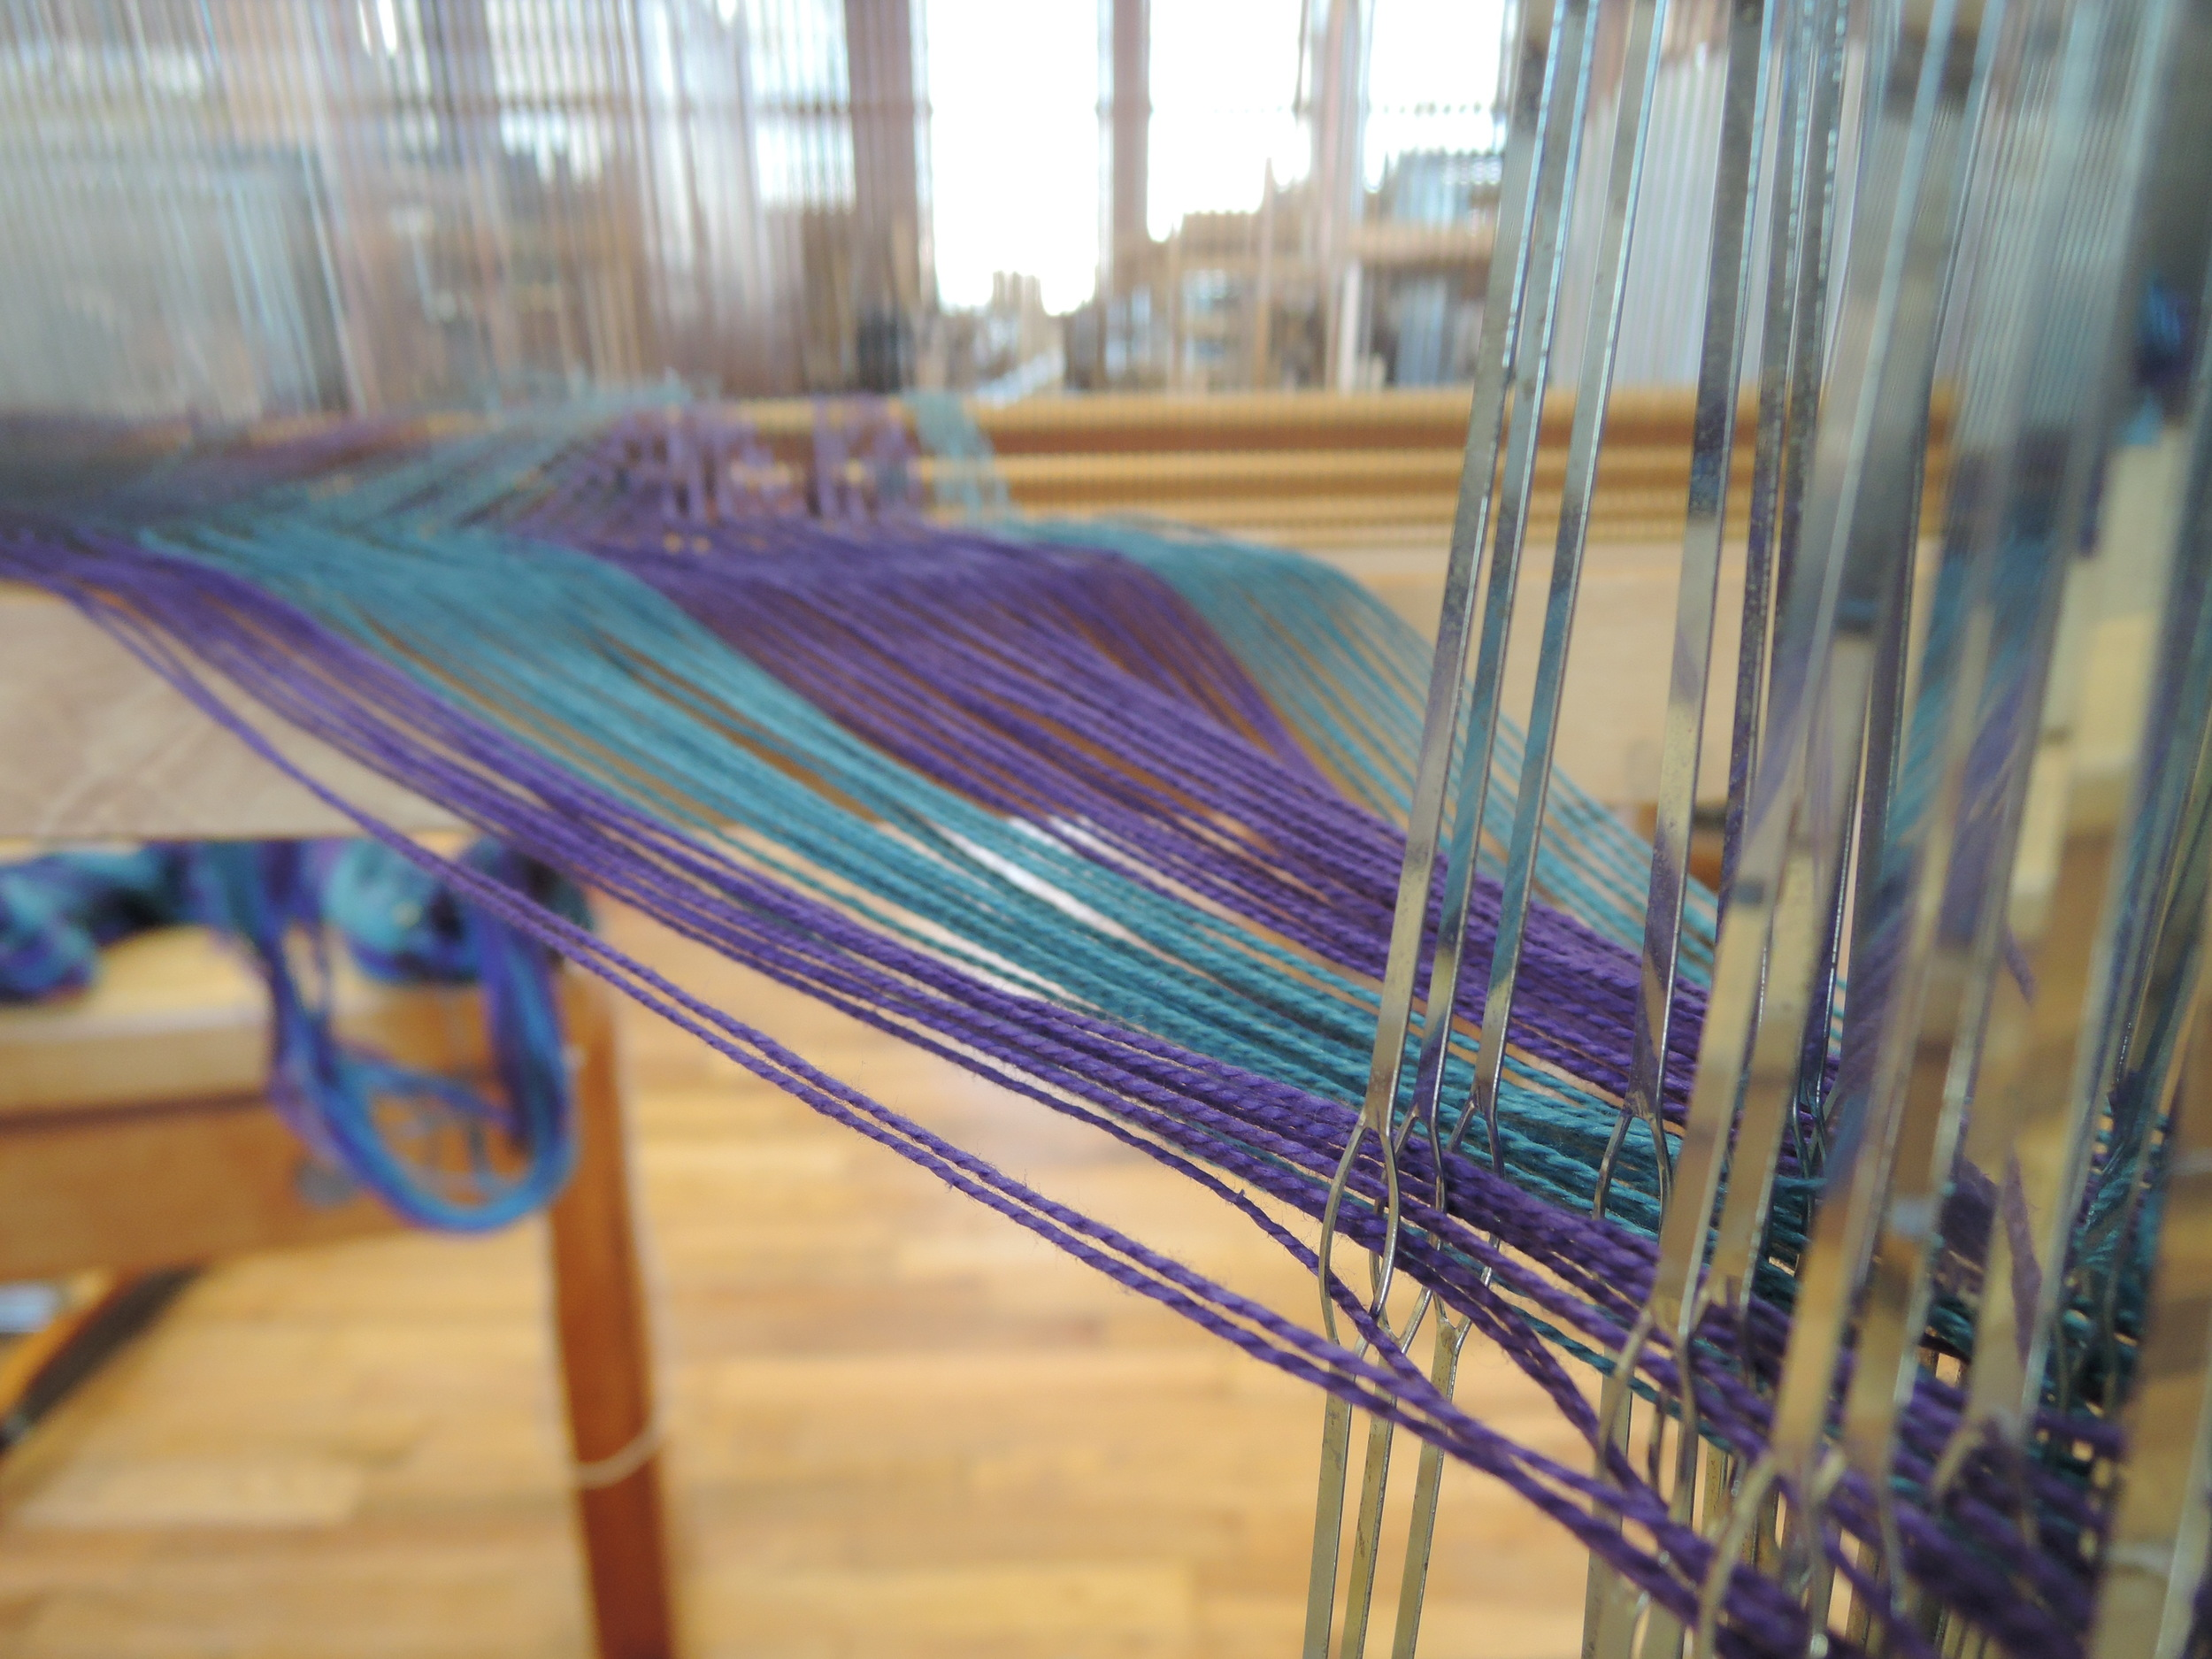 Heddles threaded.